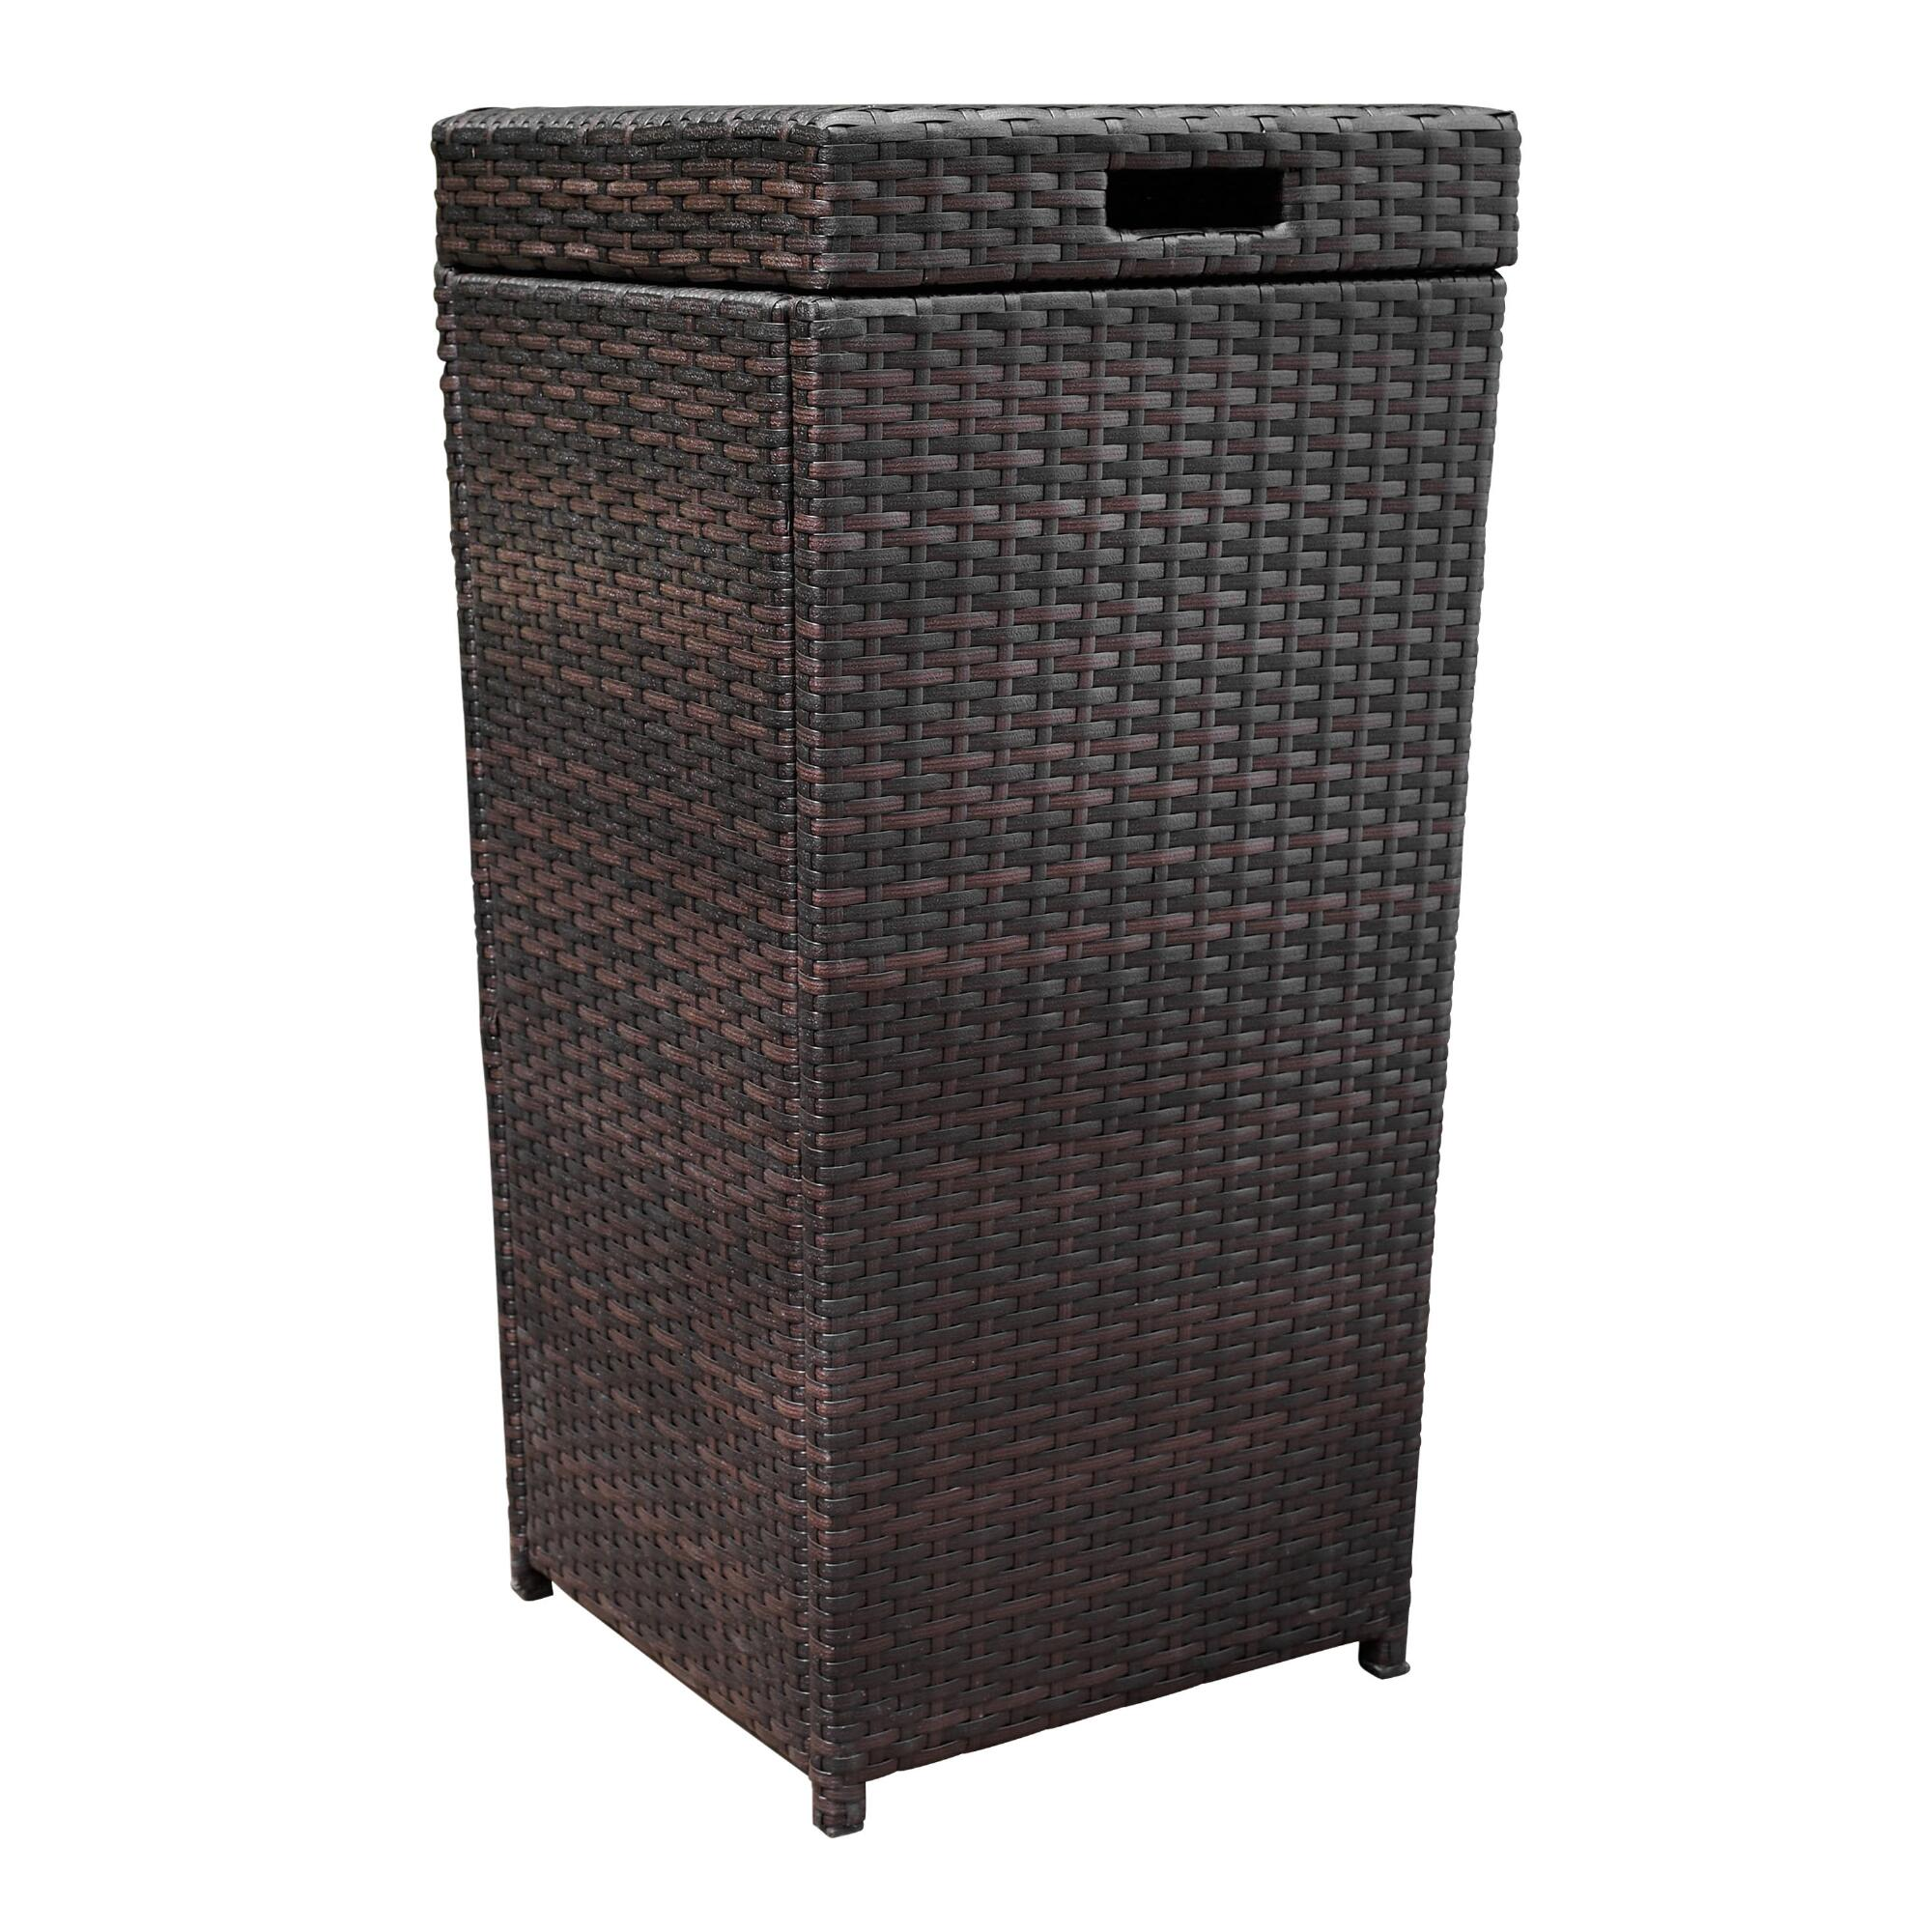 Espresso All Weather Wicker Pinamar Outdoor Patio Trash Can by World Market